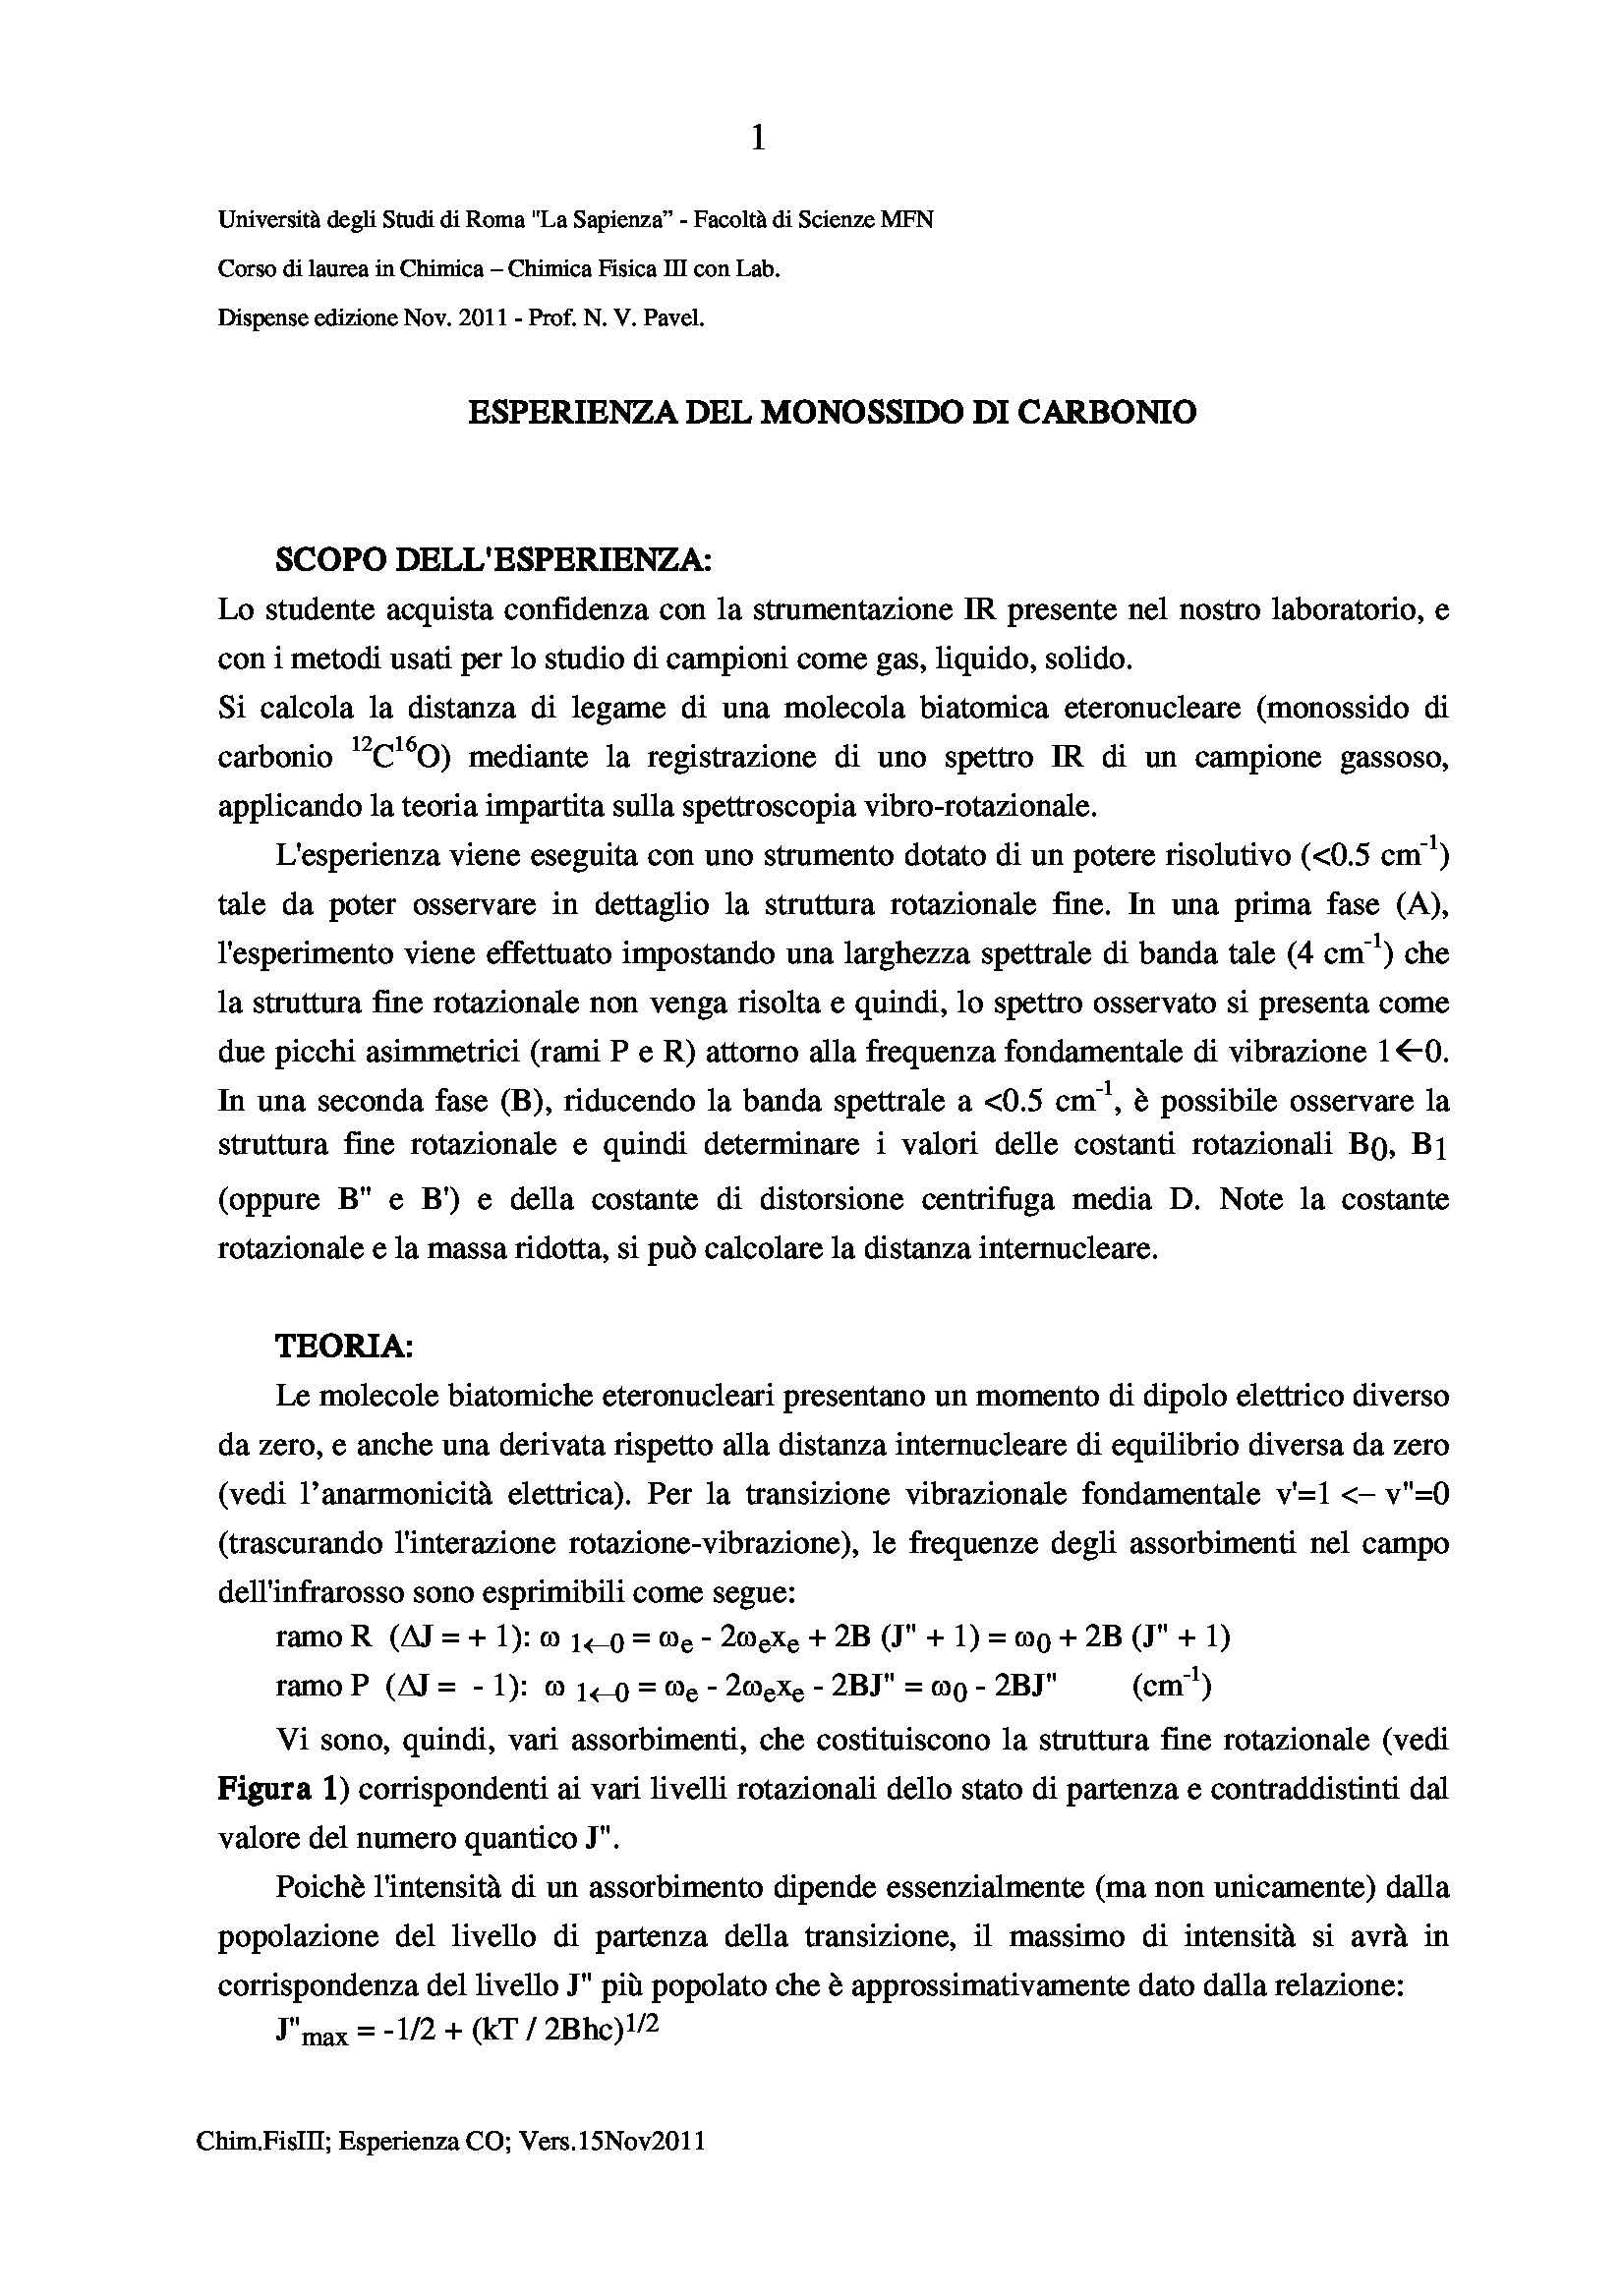 dispensa N. Pavel Chimica fisica III con laboratorio